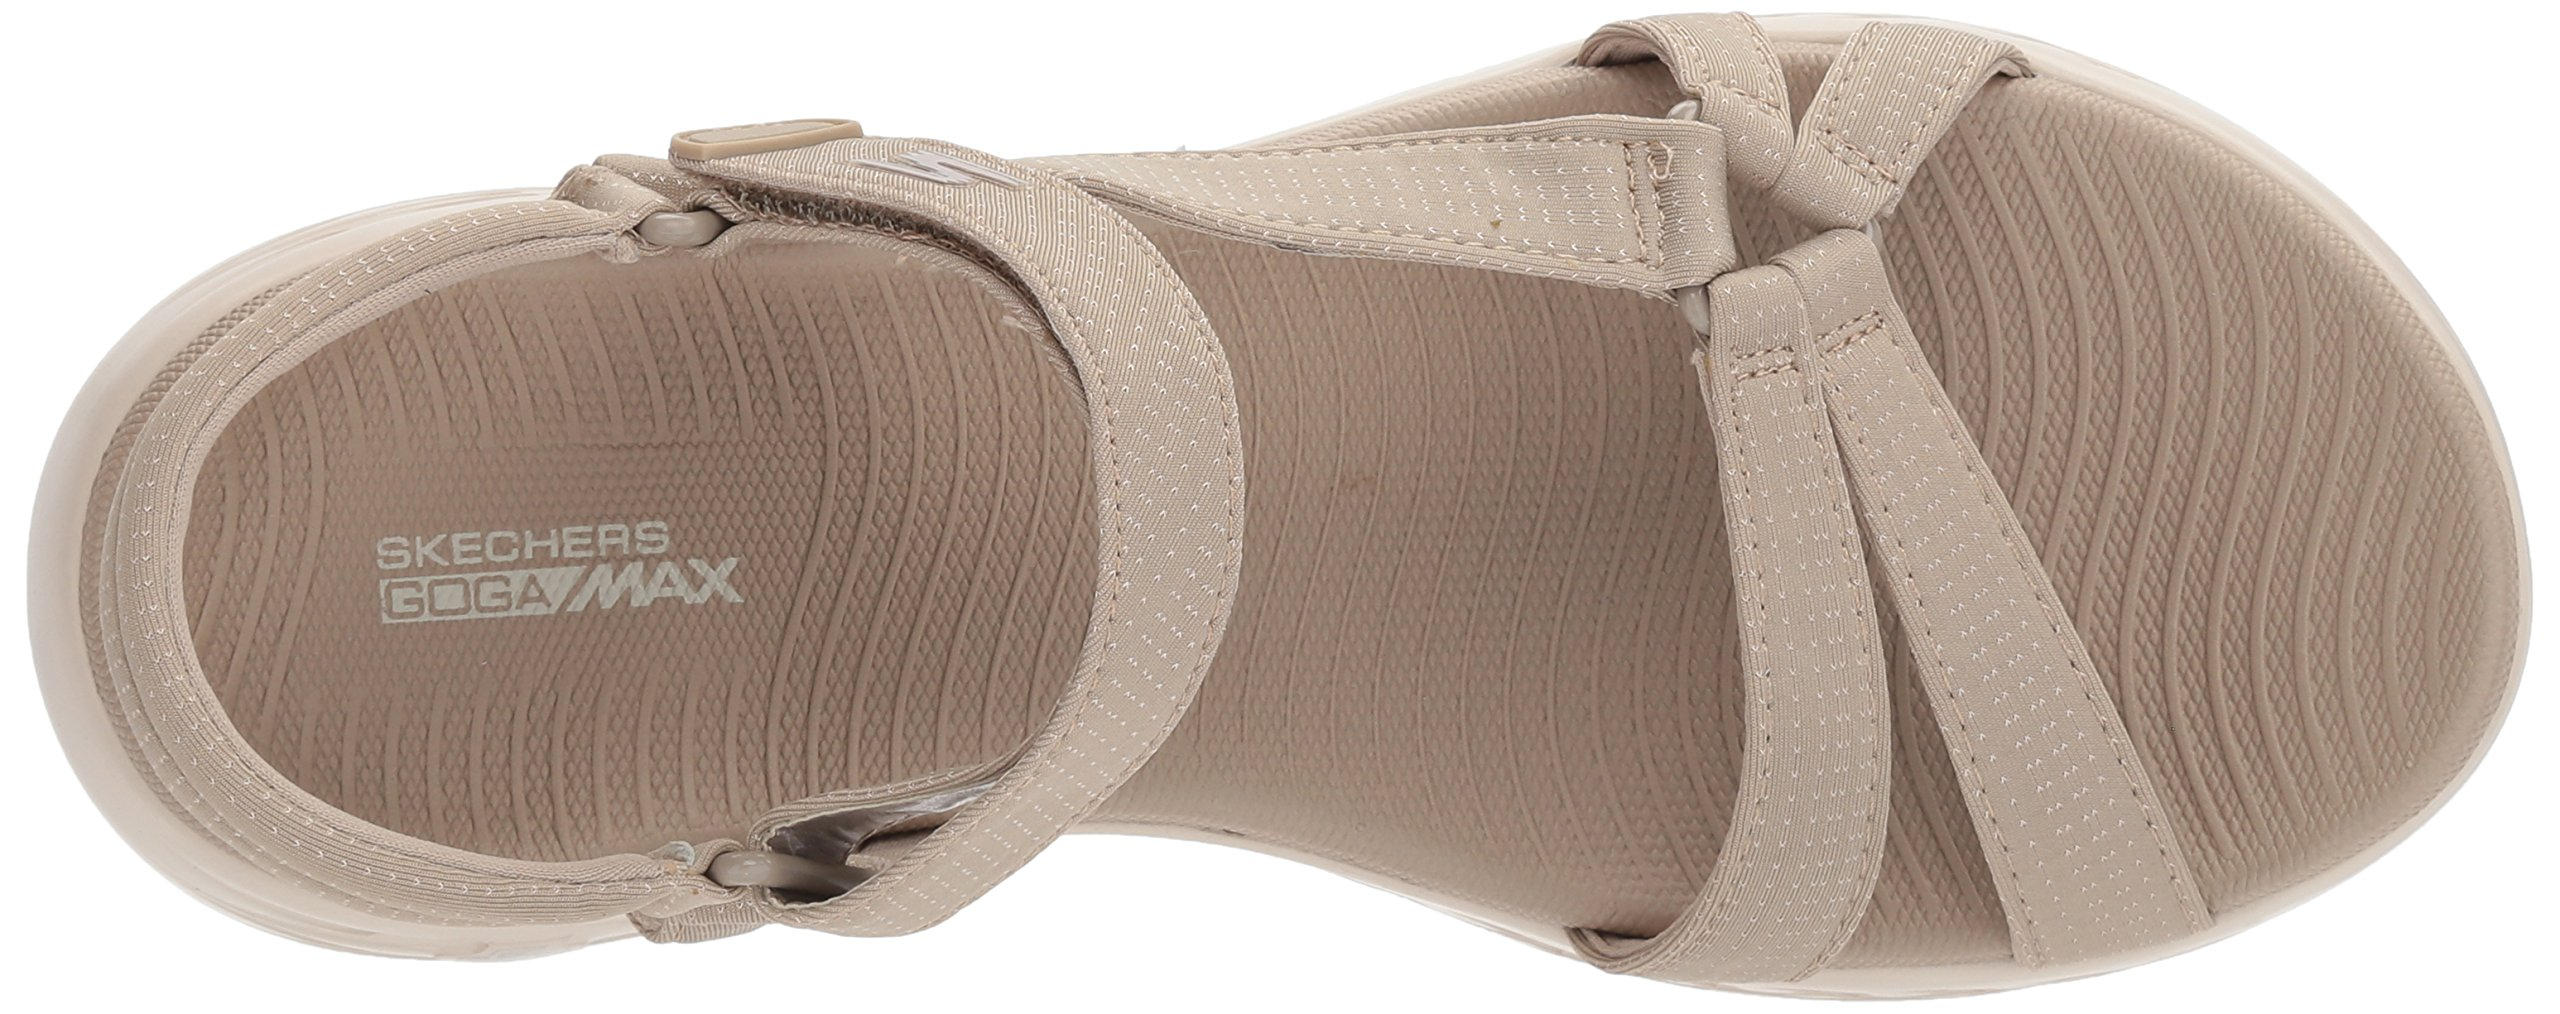 Skechers Performance Women's on-The-Go 600-Brilliancy Wide Sport Sandal,Natural,6 W US by Skechers (Image #8)